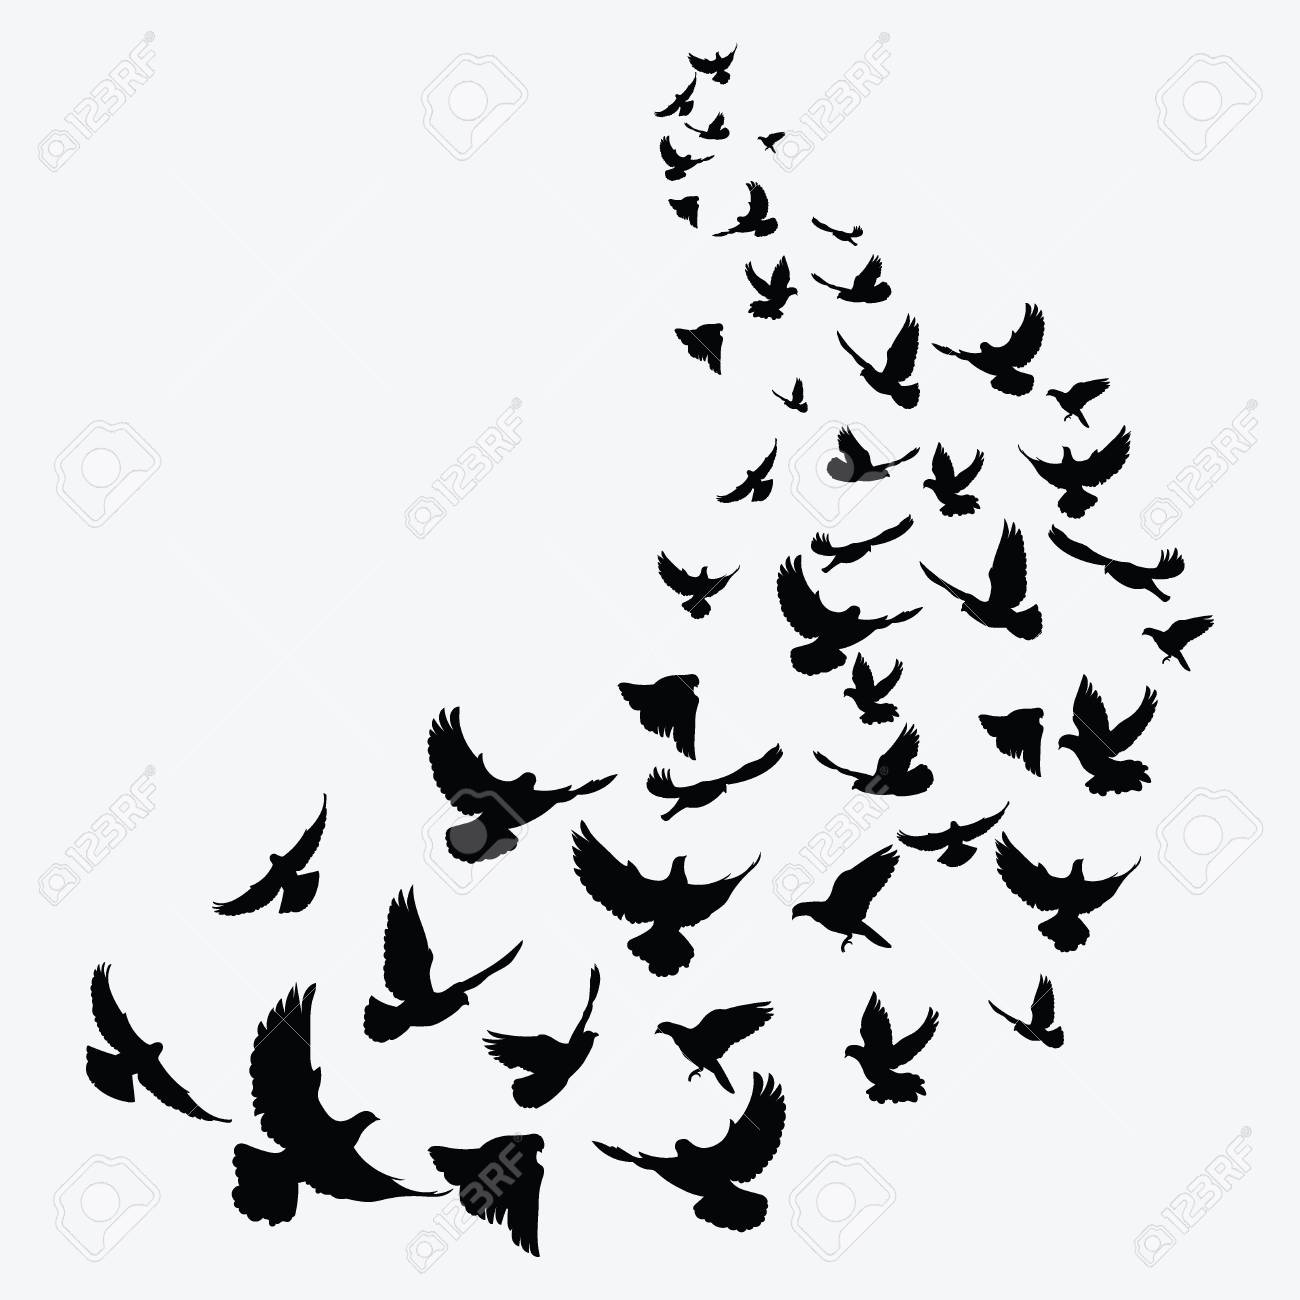 Silhouette of a flock of birds  Black contours of flying birds